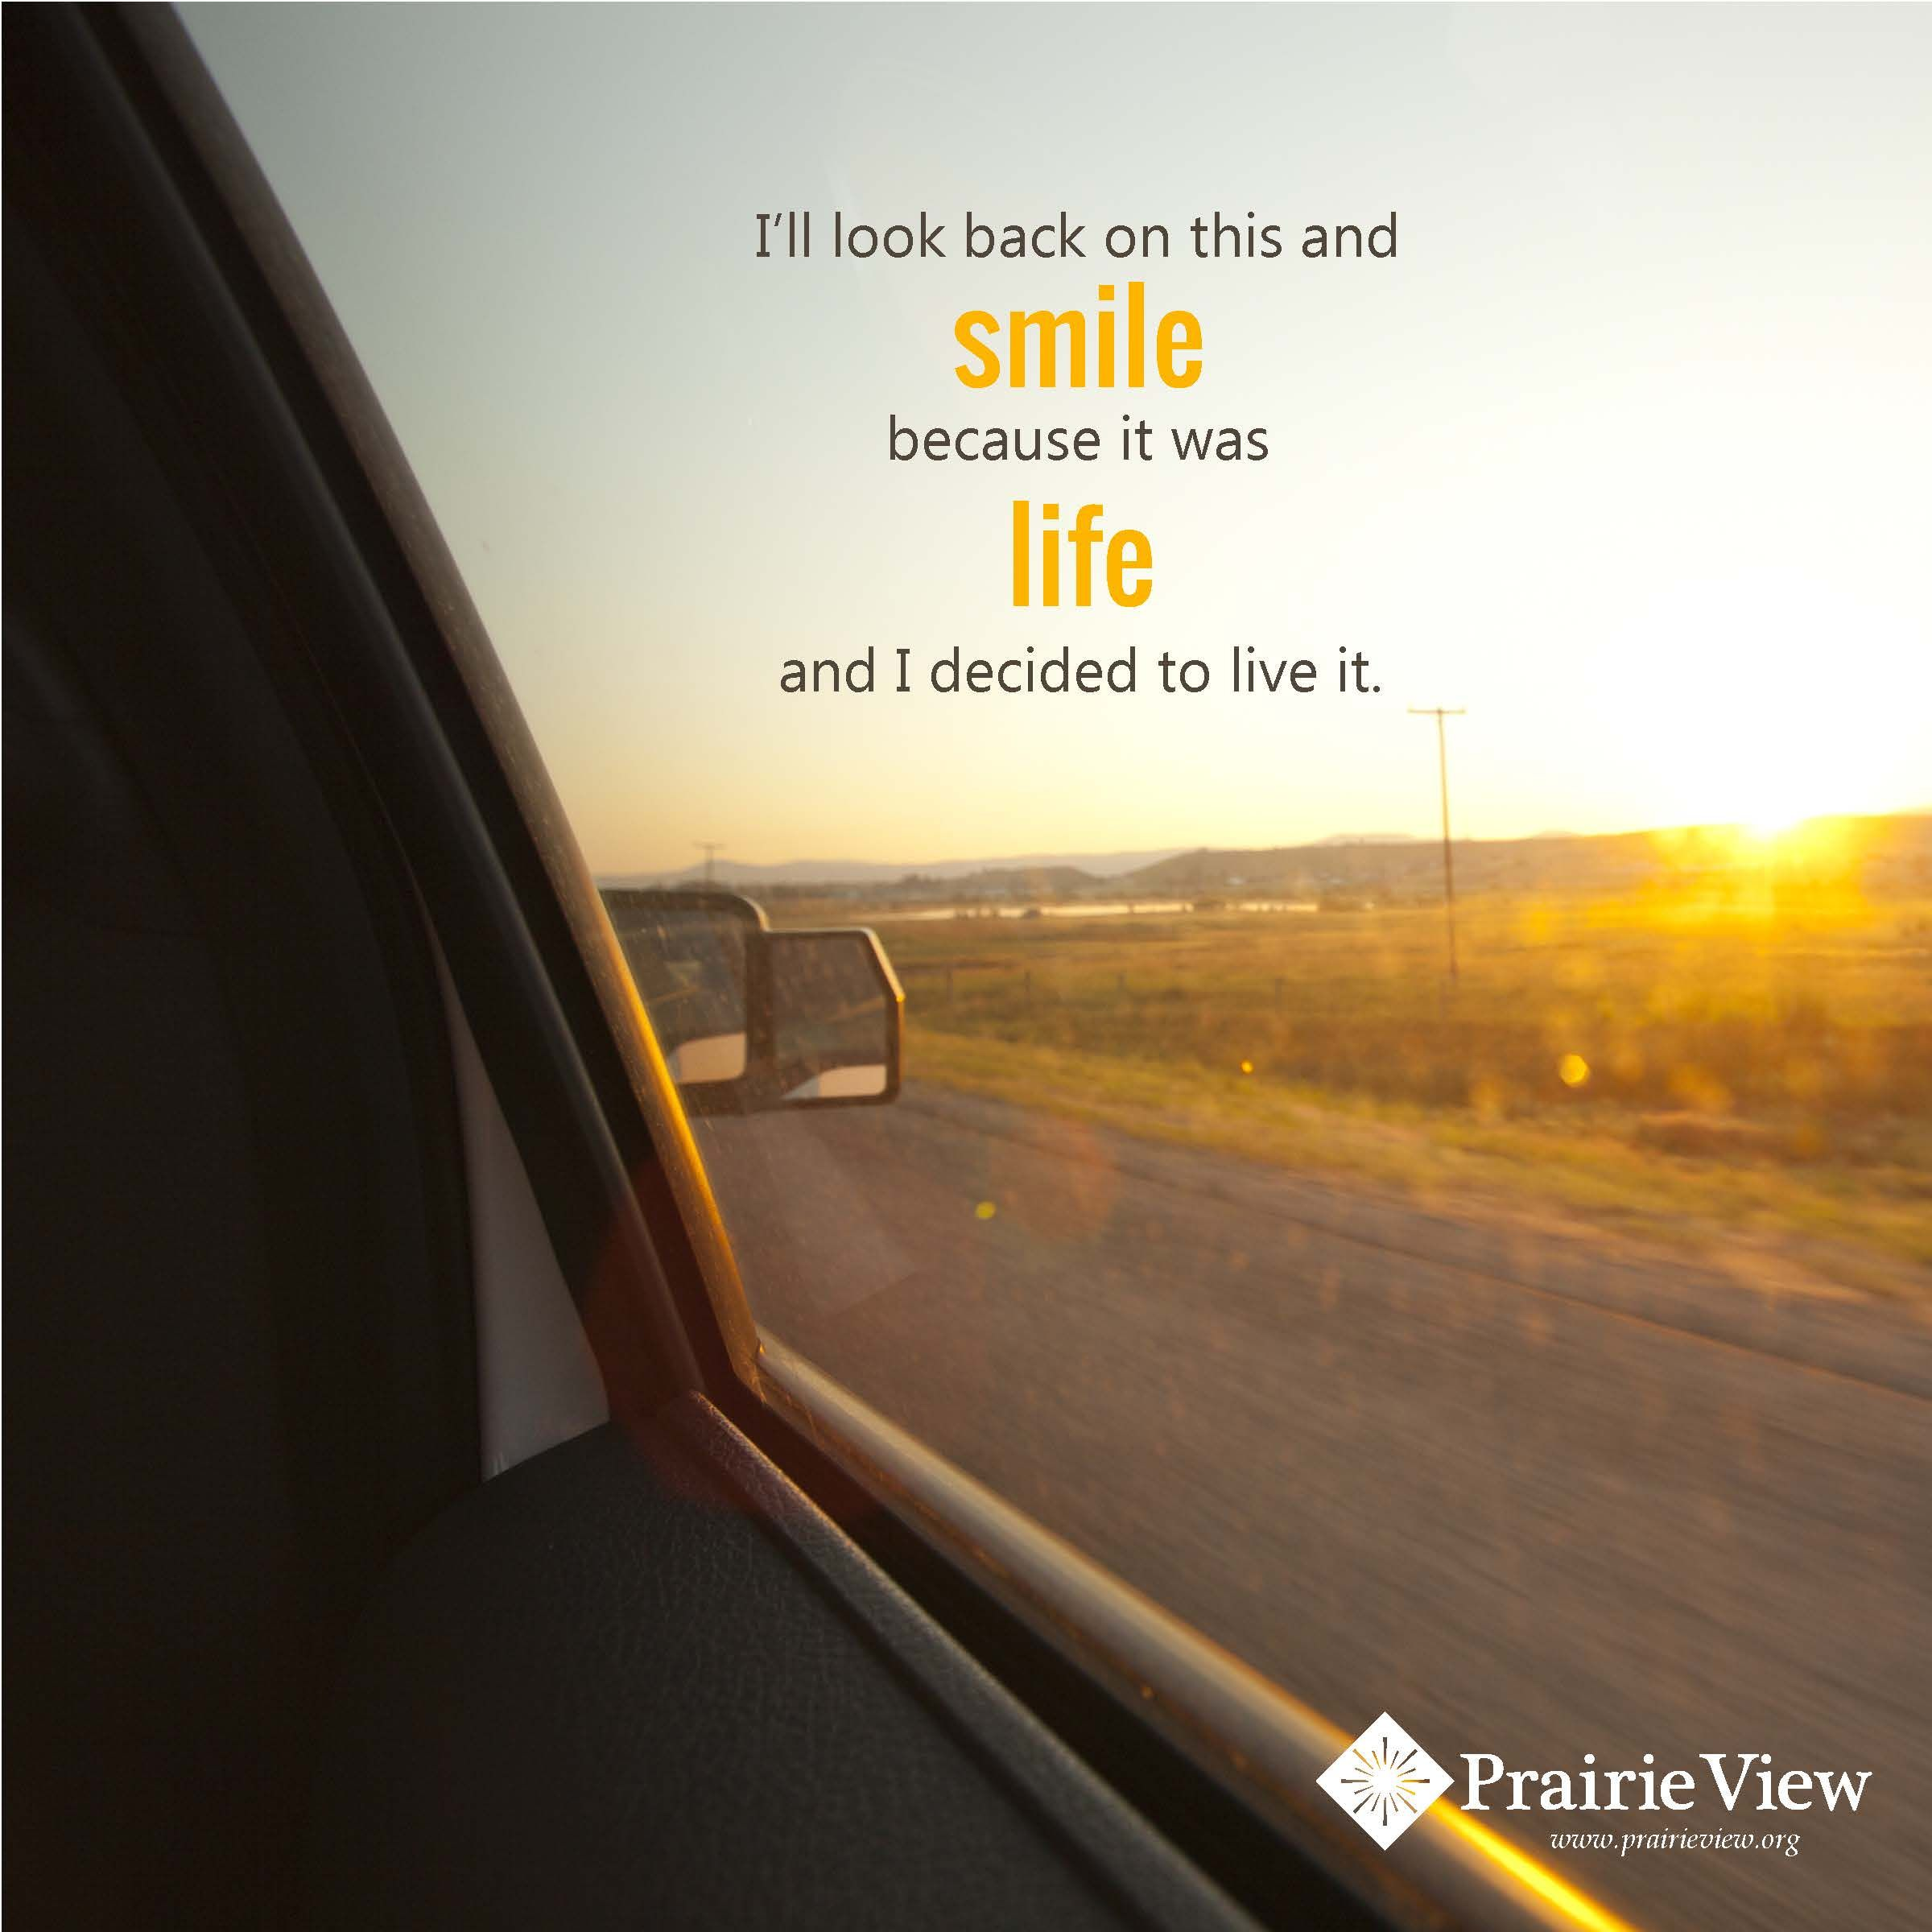 Taking the first step to breaking free from addiction is difficult...but worth it! Smile and live life!